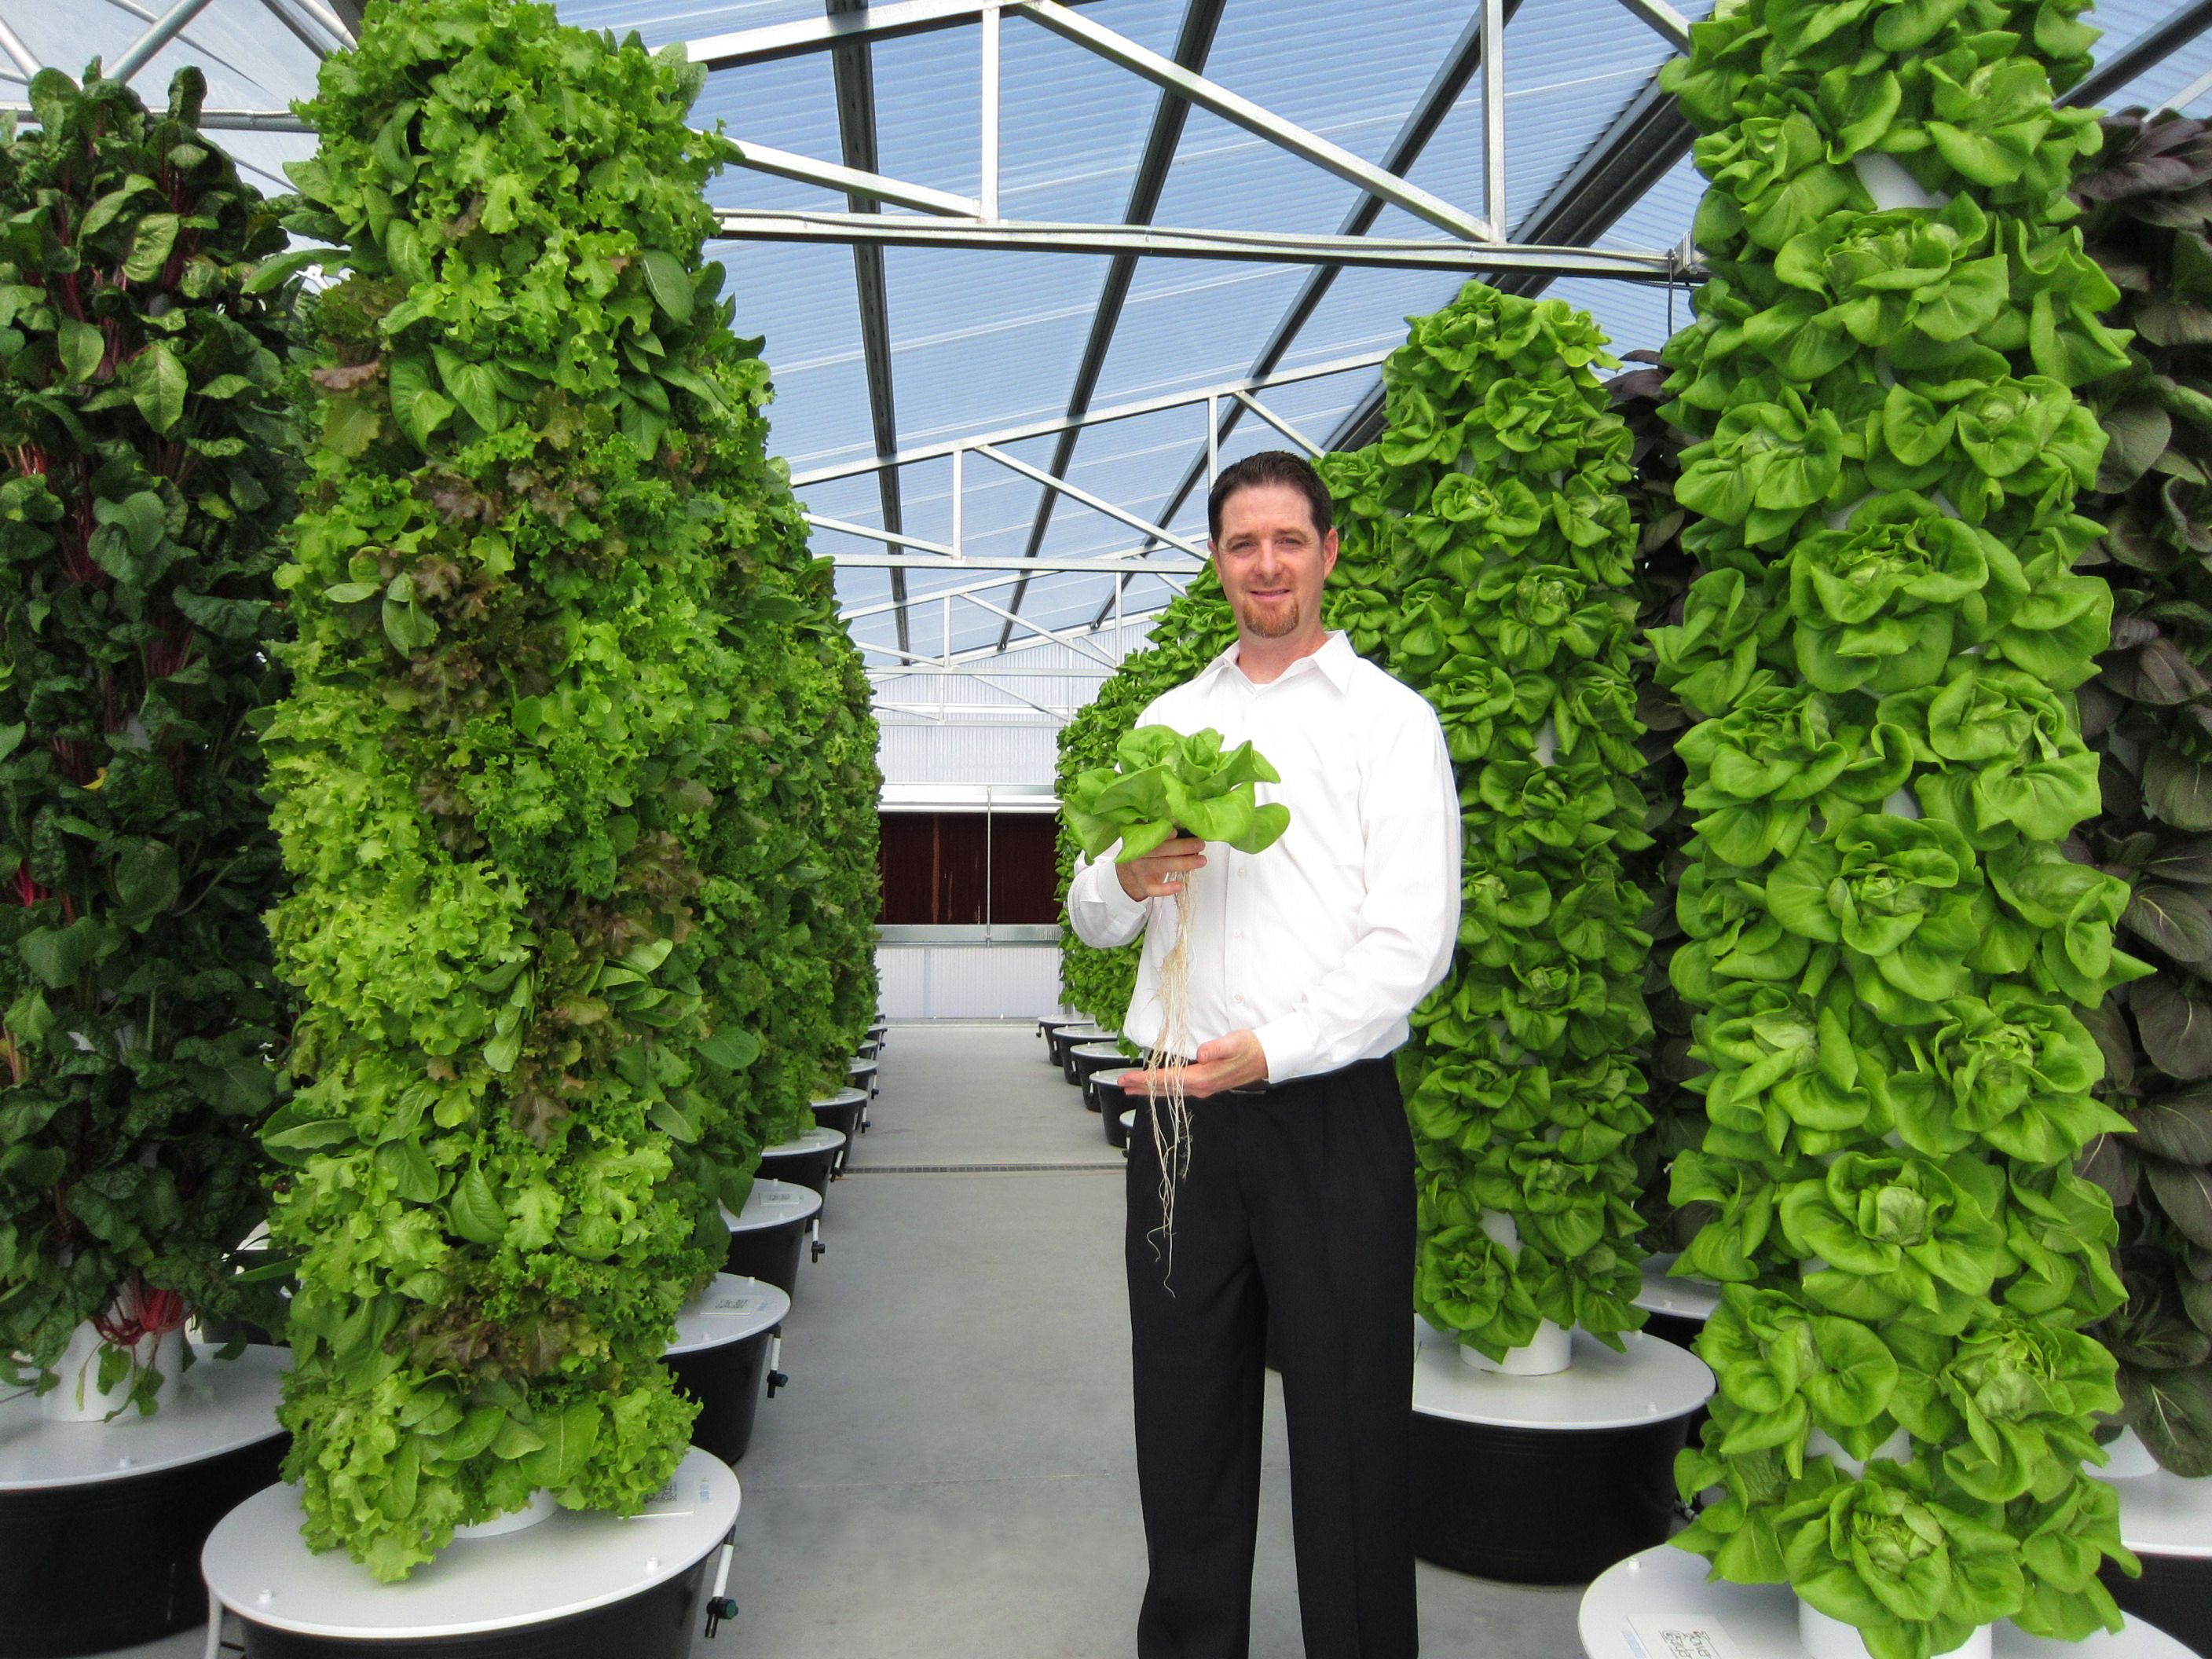 Tim Blank, founder and CEO of Future Growing, holds